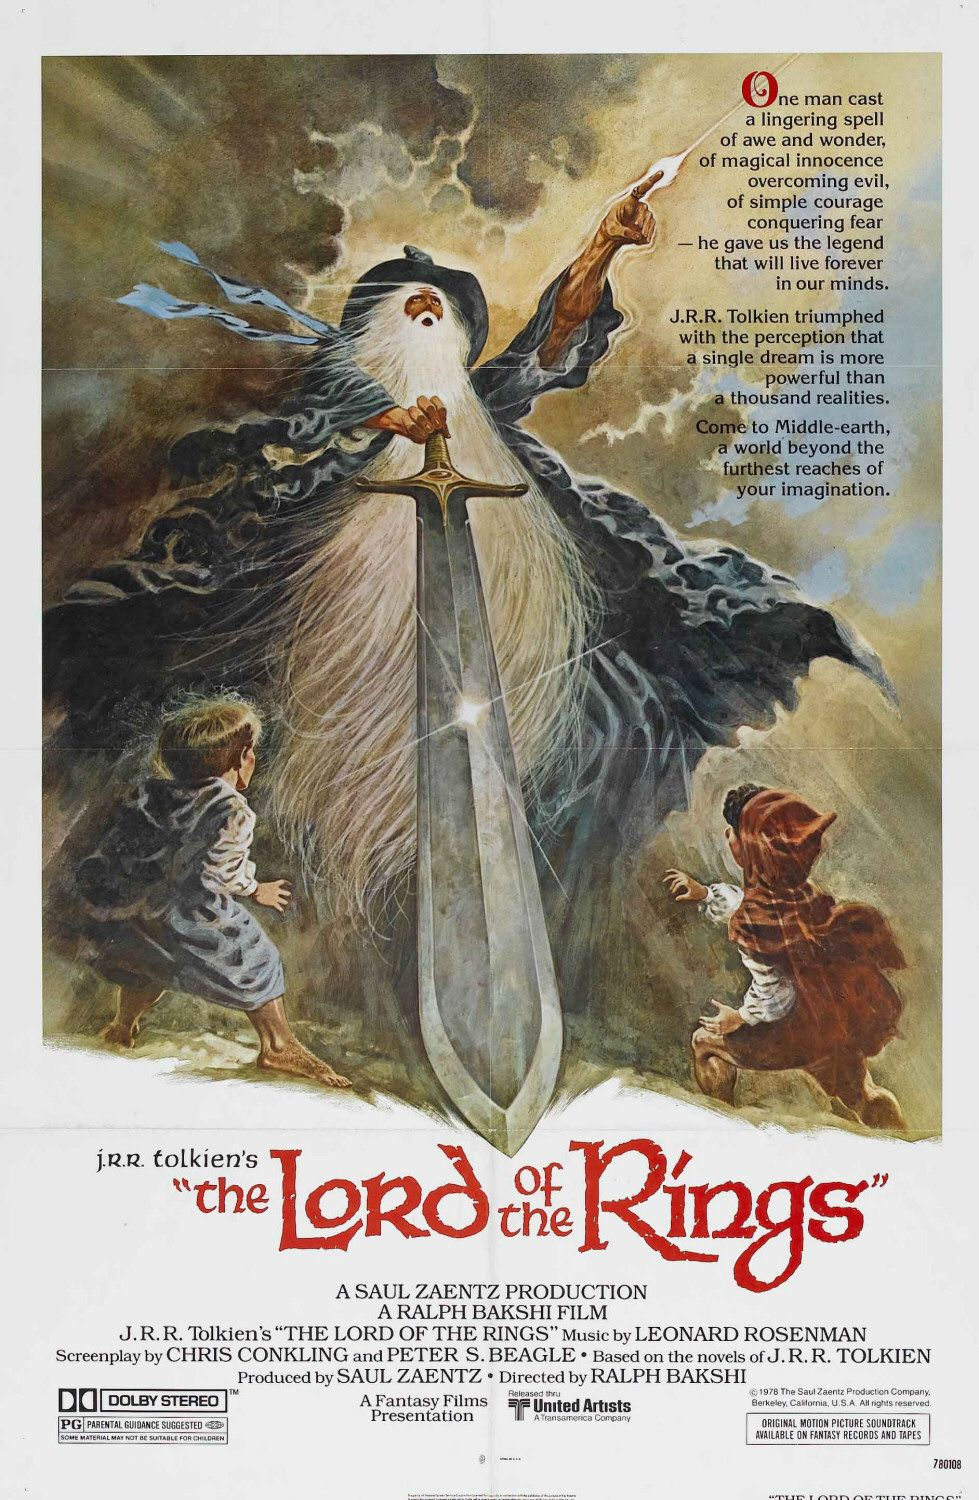 The Lord of the Rings (40th Anniversary Screening!)